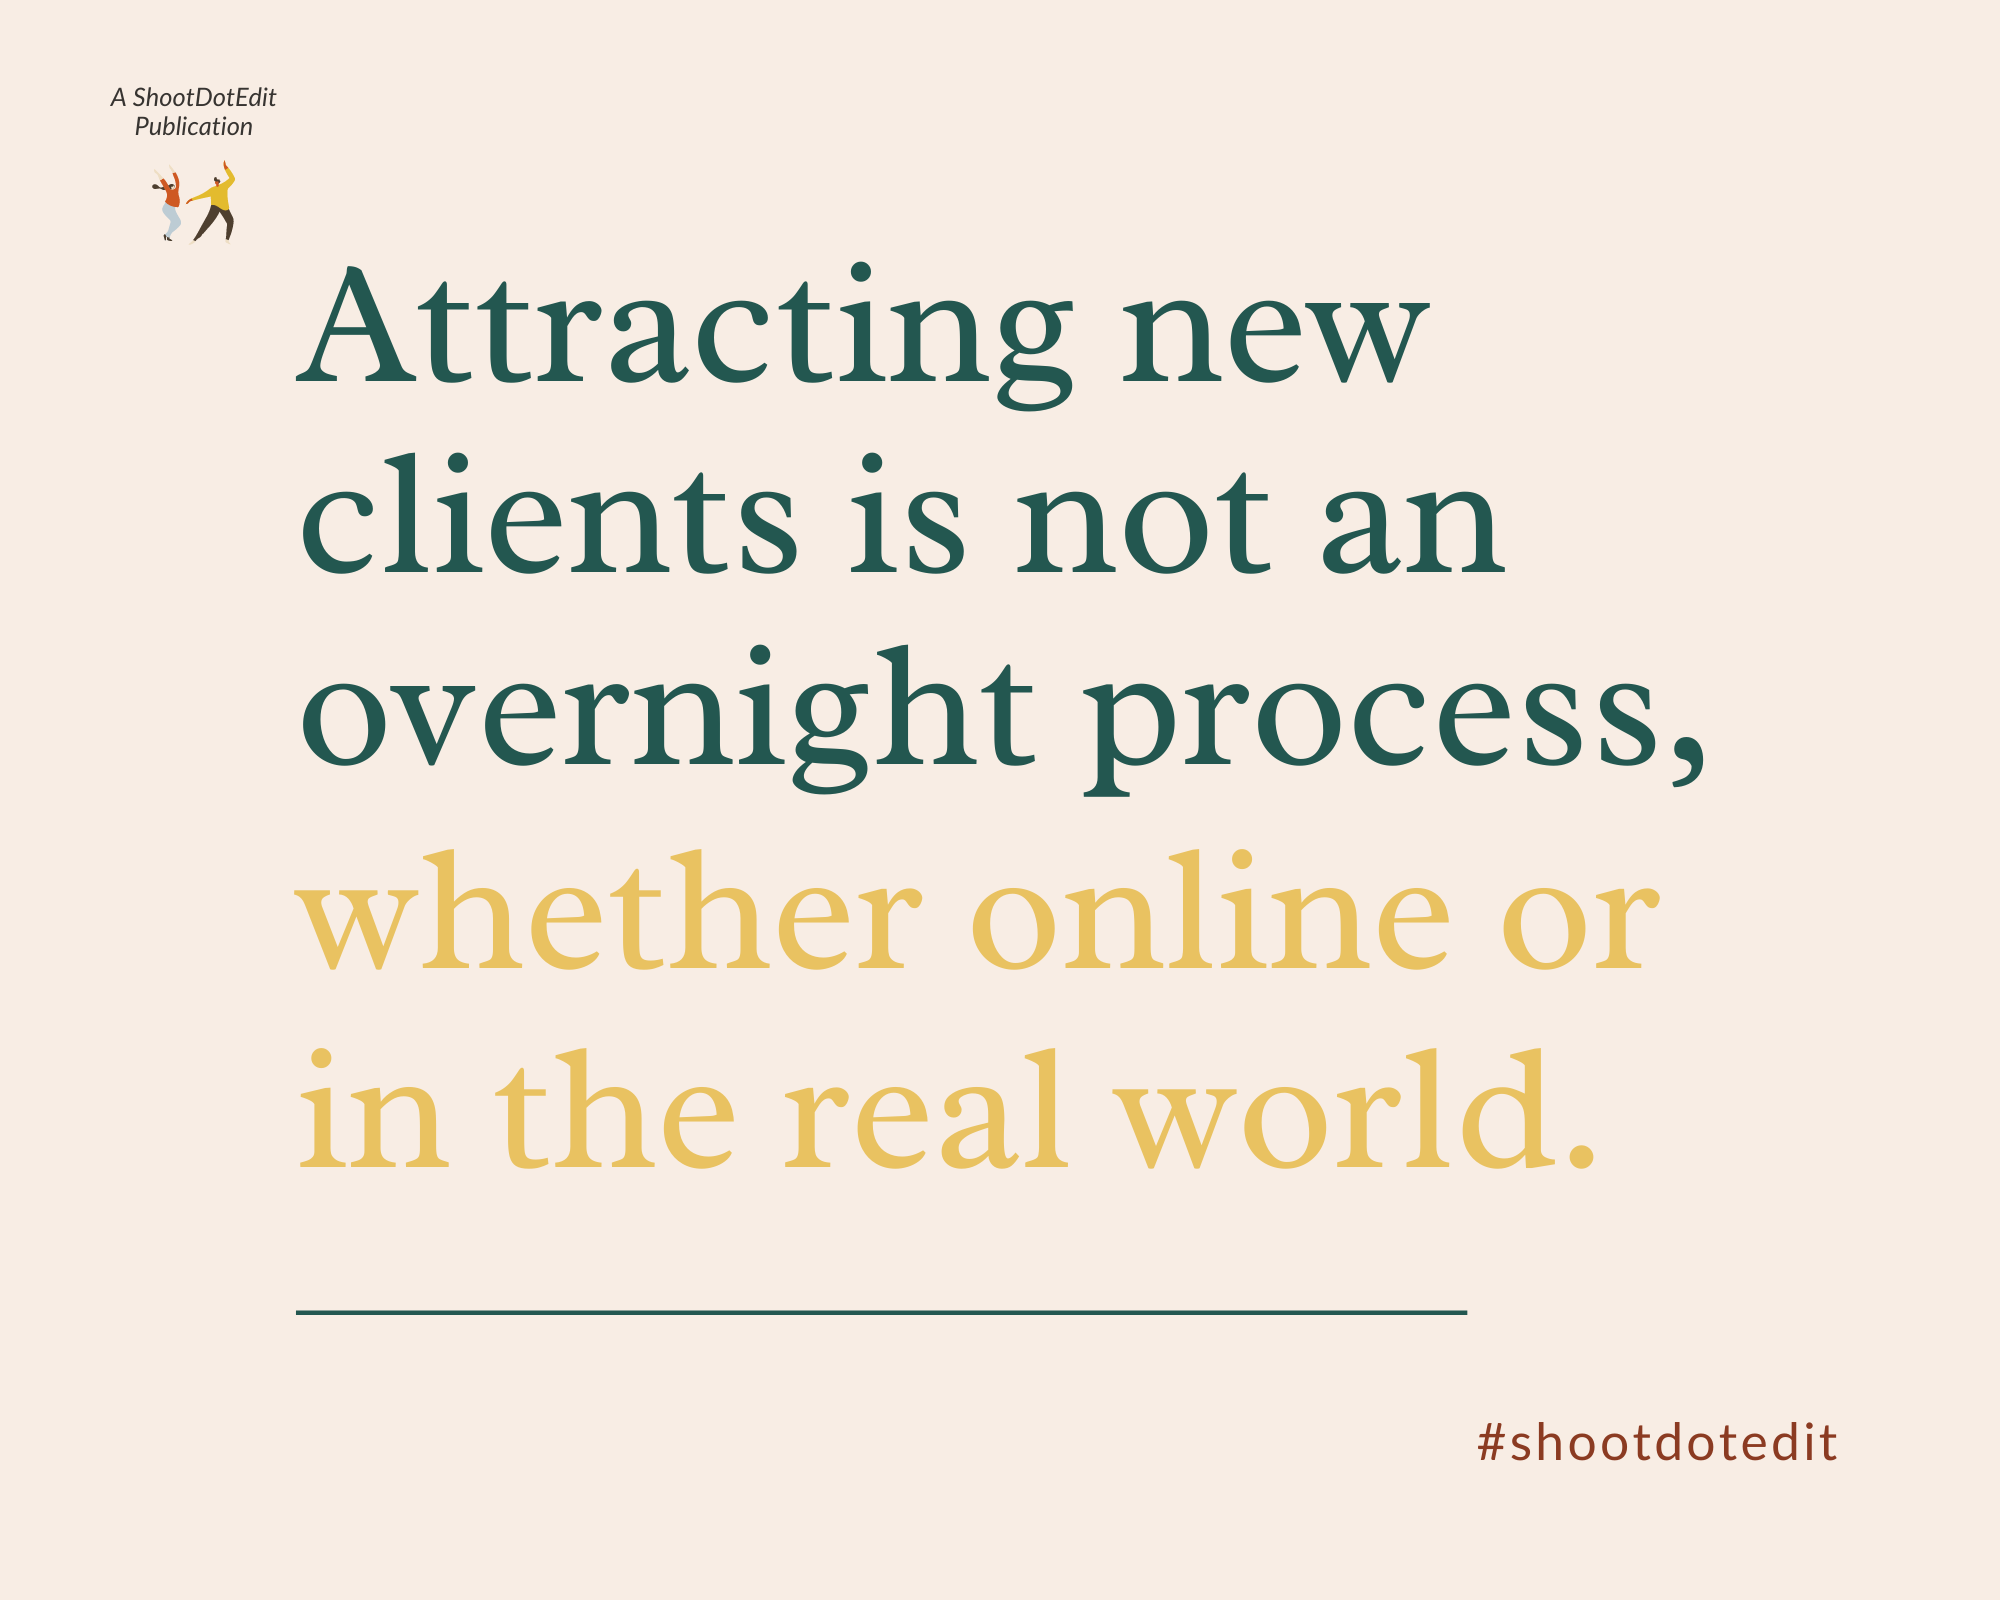 Infographic stating attracting new clients is not an overnight process whether online or in the real world